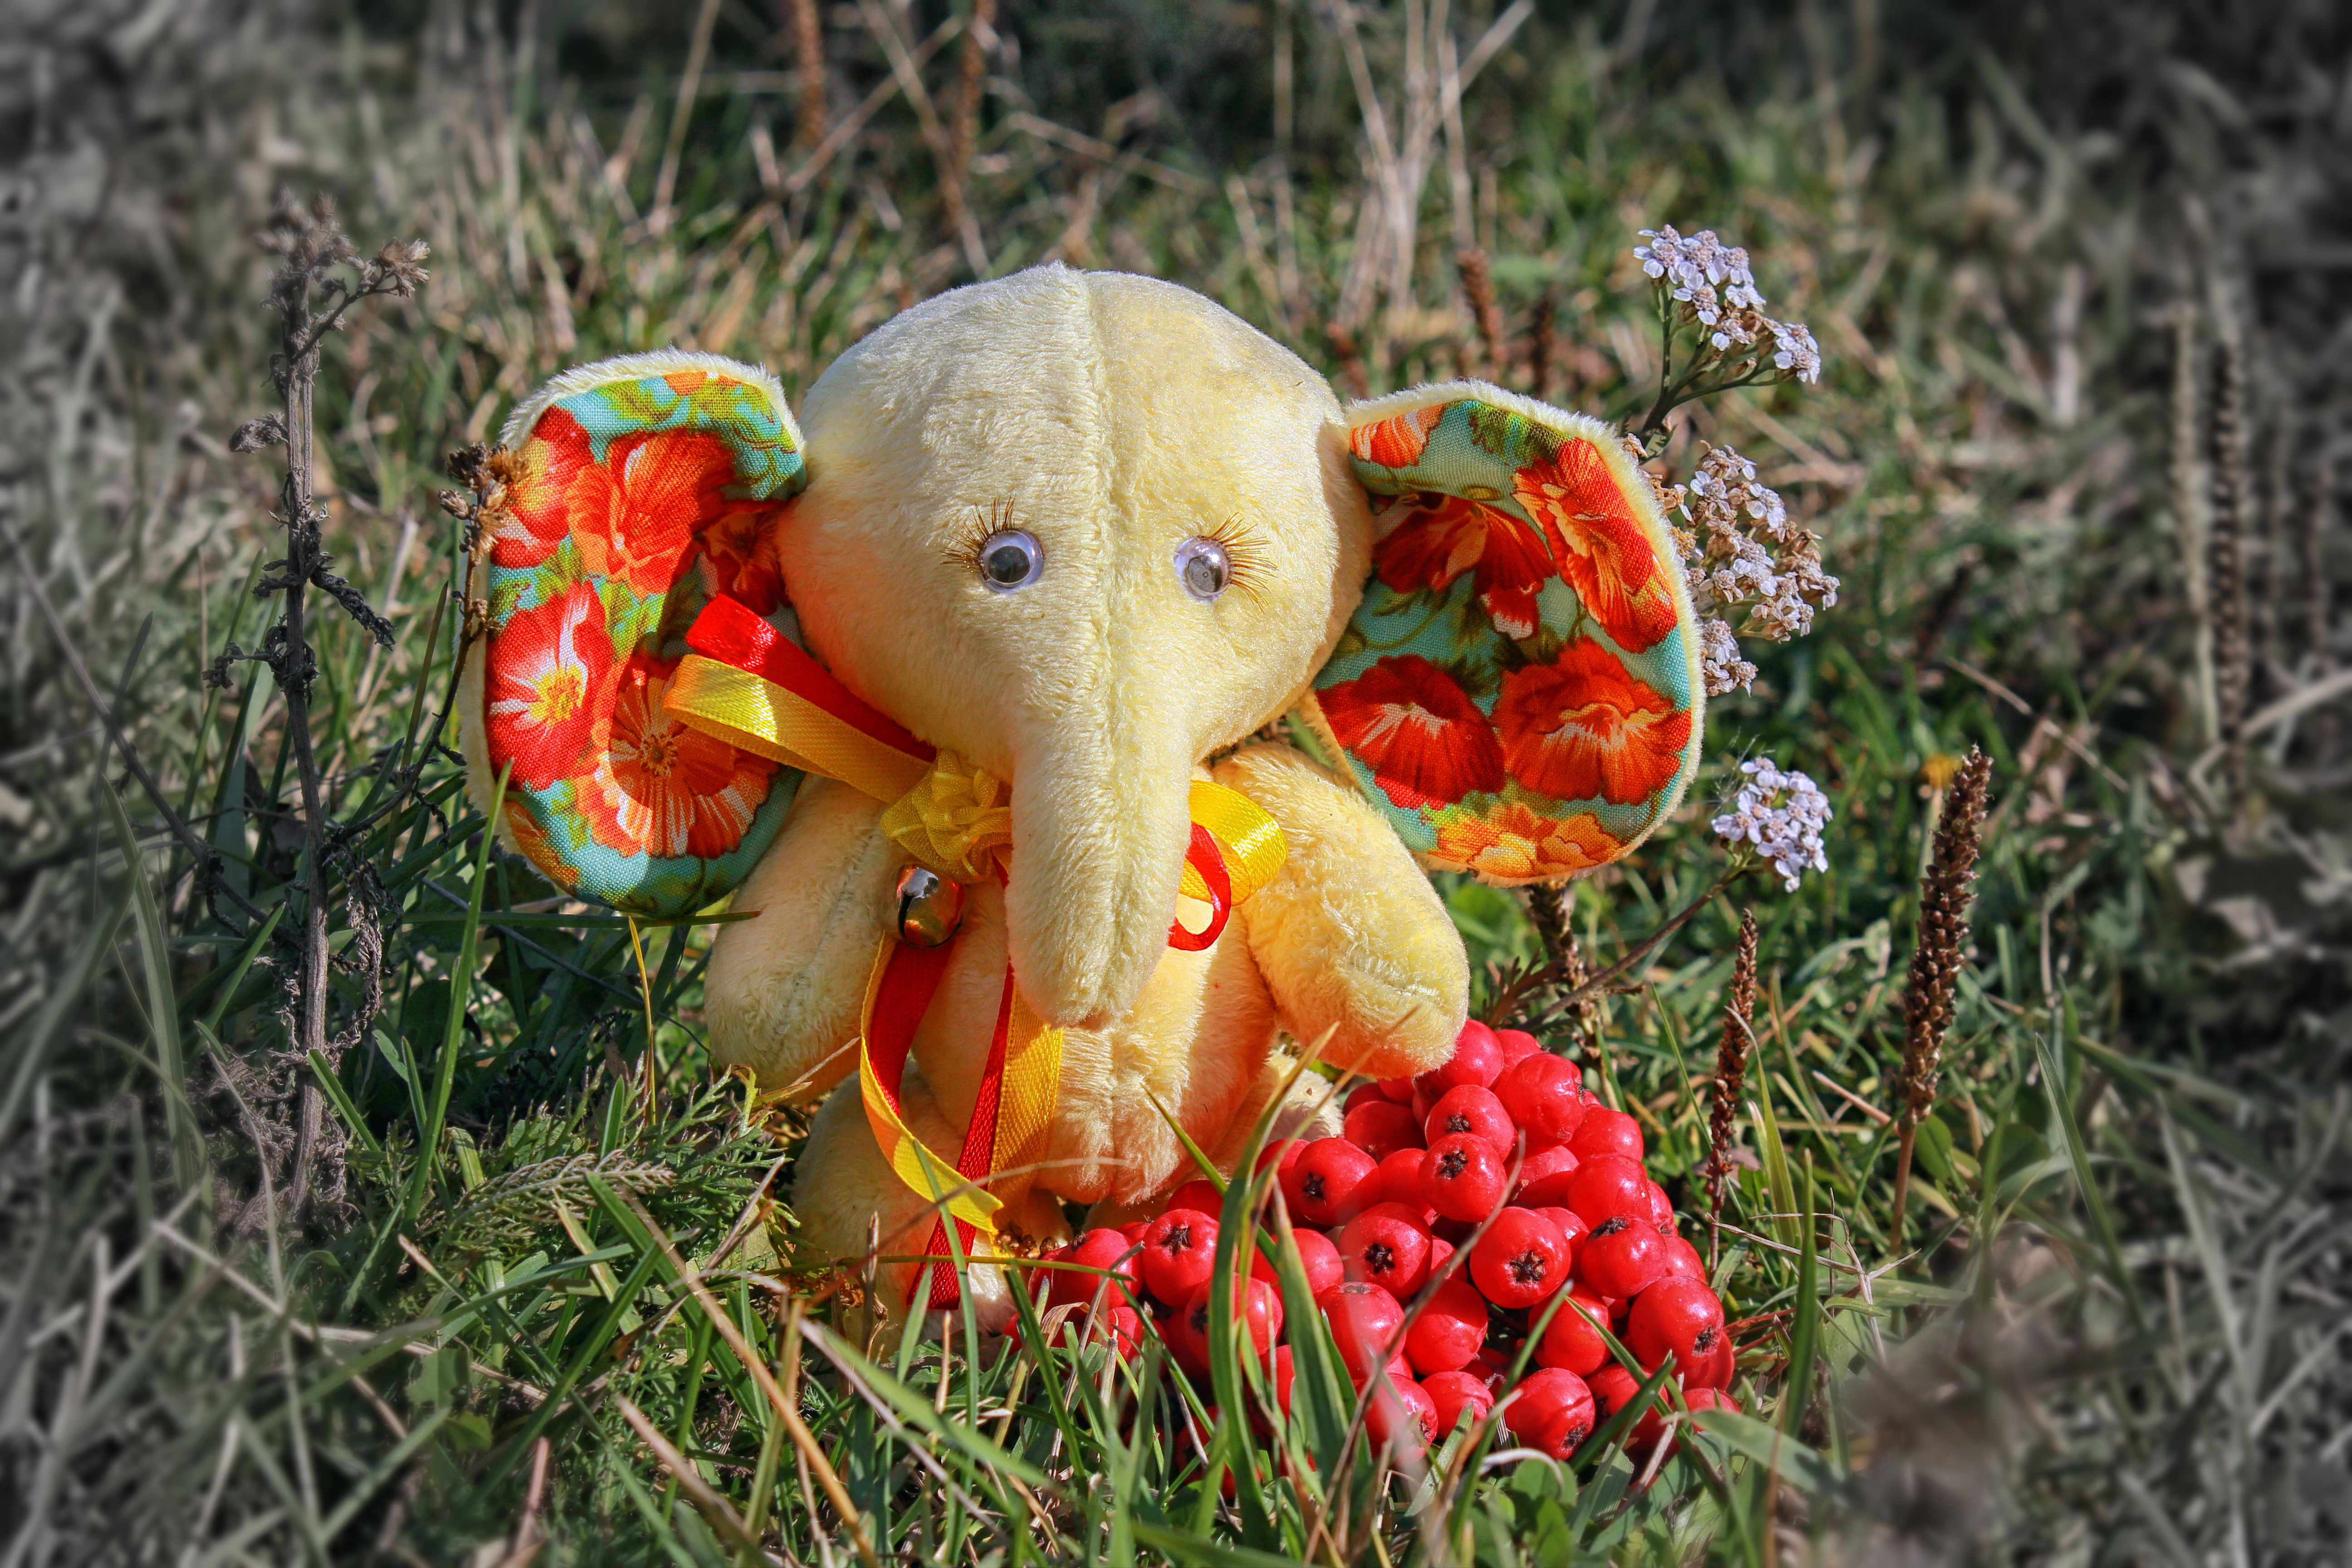 toy souvenir elephant gift surprise cute plush love